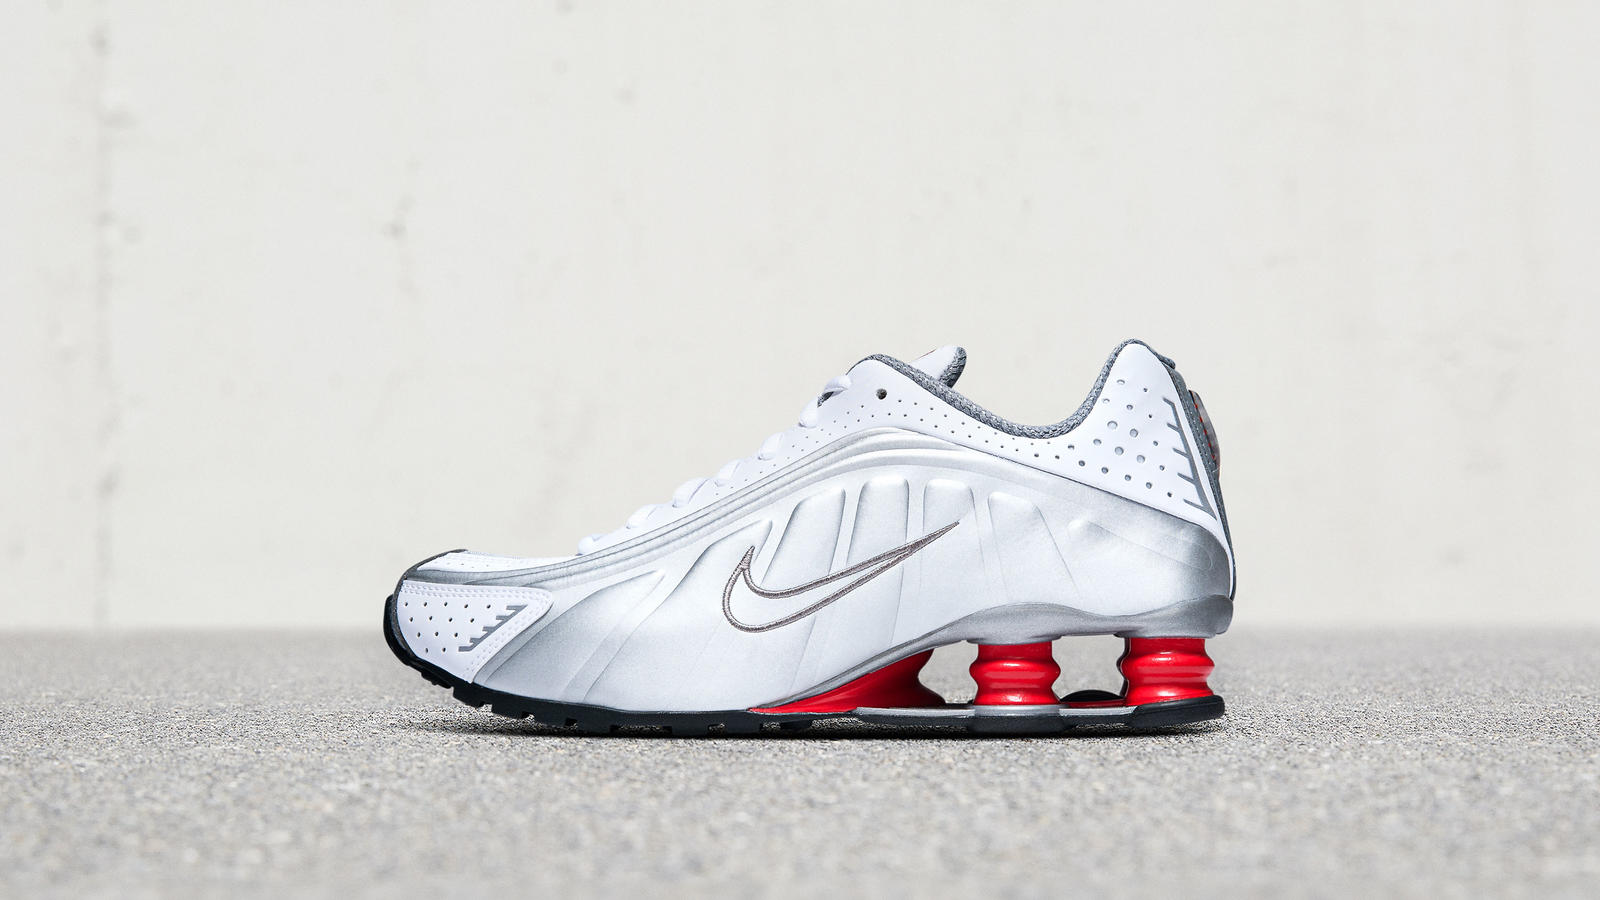 timeless design 65b6e 5d9e3 How to Get the Nike Shox R4 0